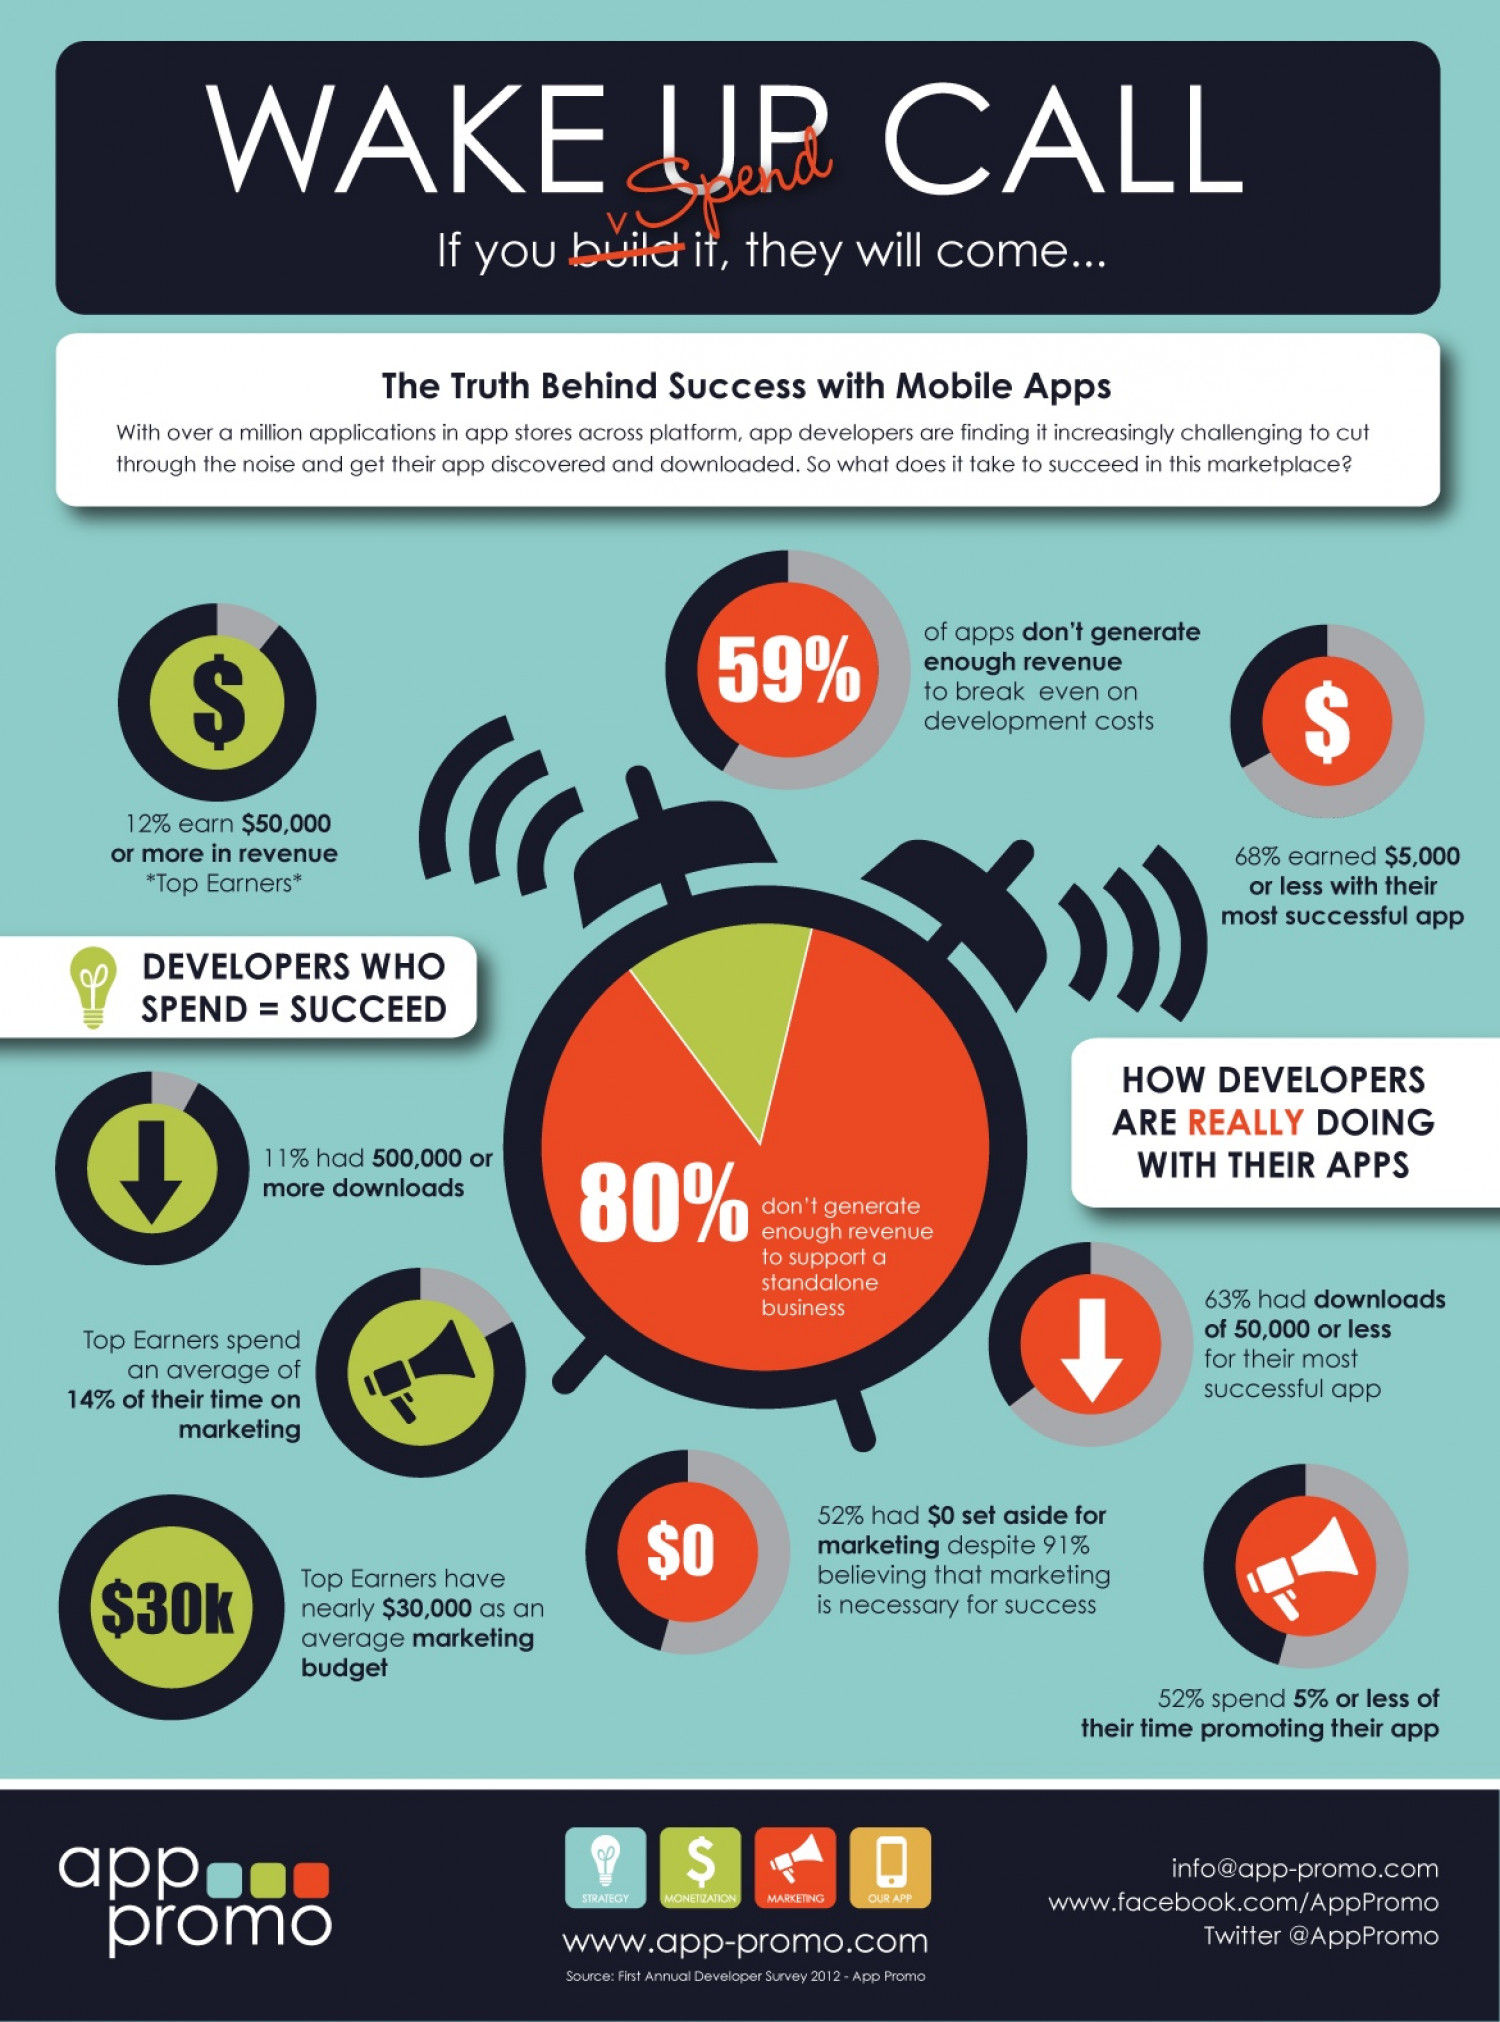 Wake Up Call - The Truth Behind Mobile App Success Infographic